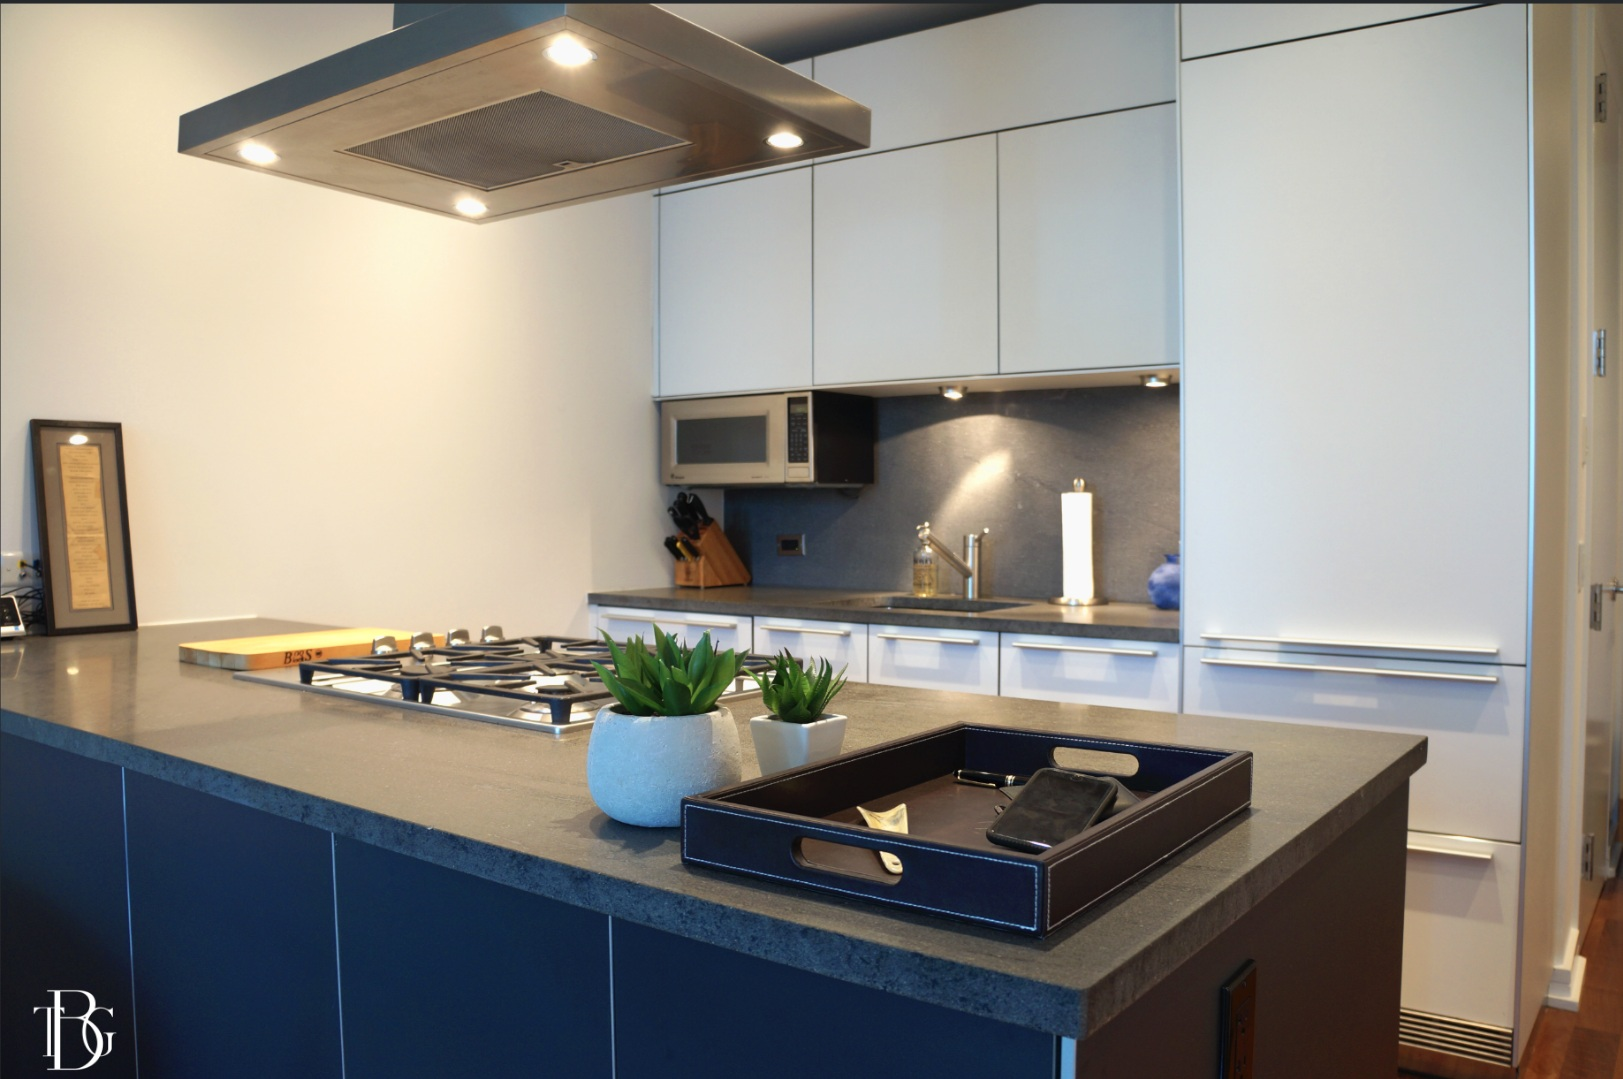 101-warren-tbg-interior-style-kitchen.png